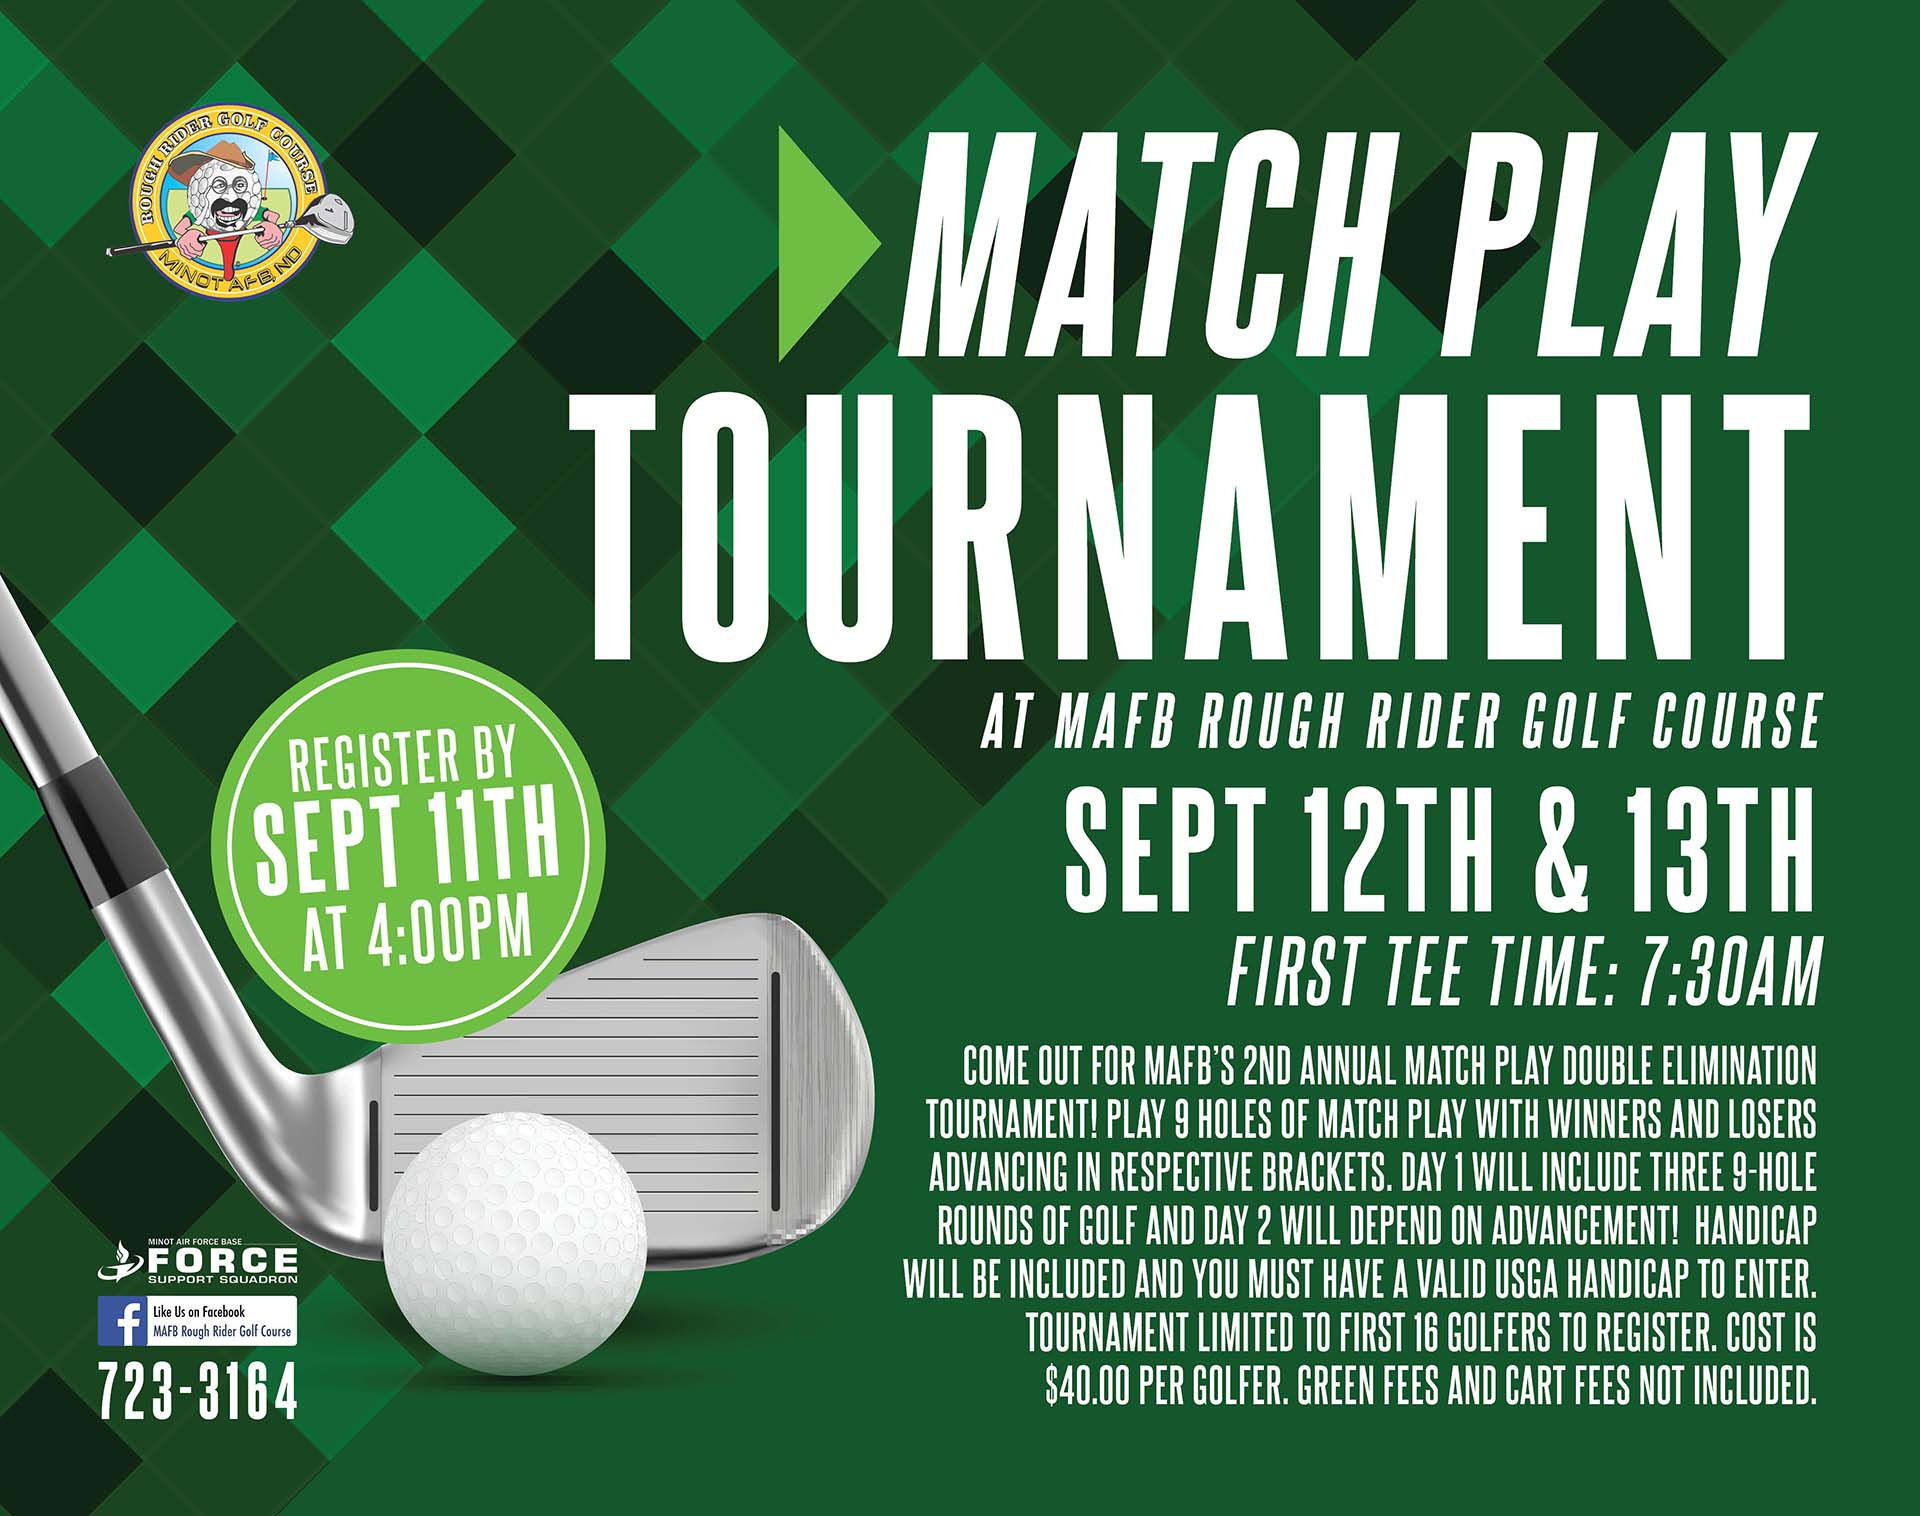 Match Play Tournament